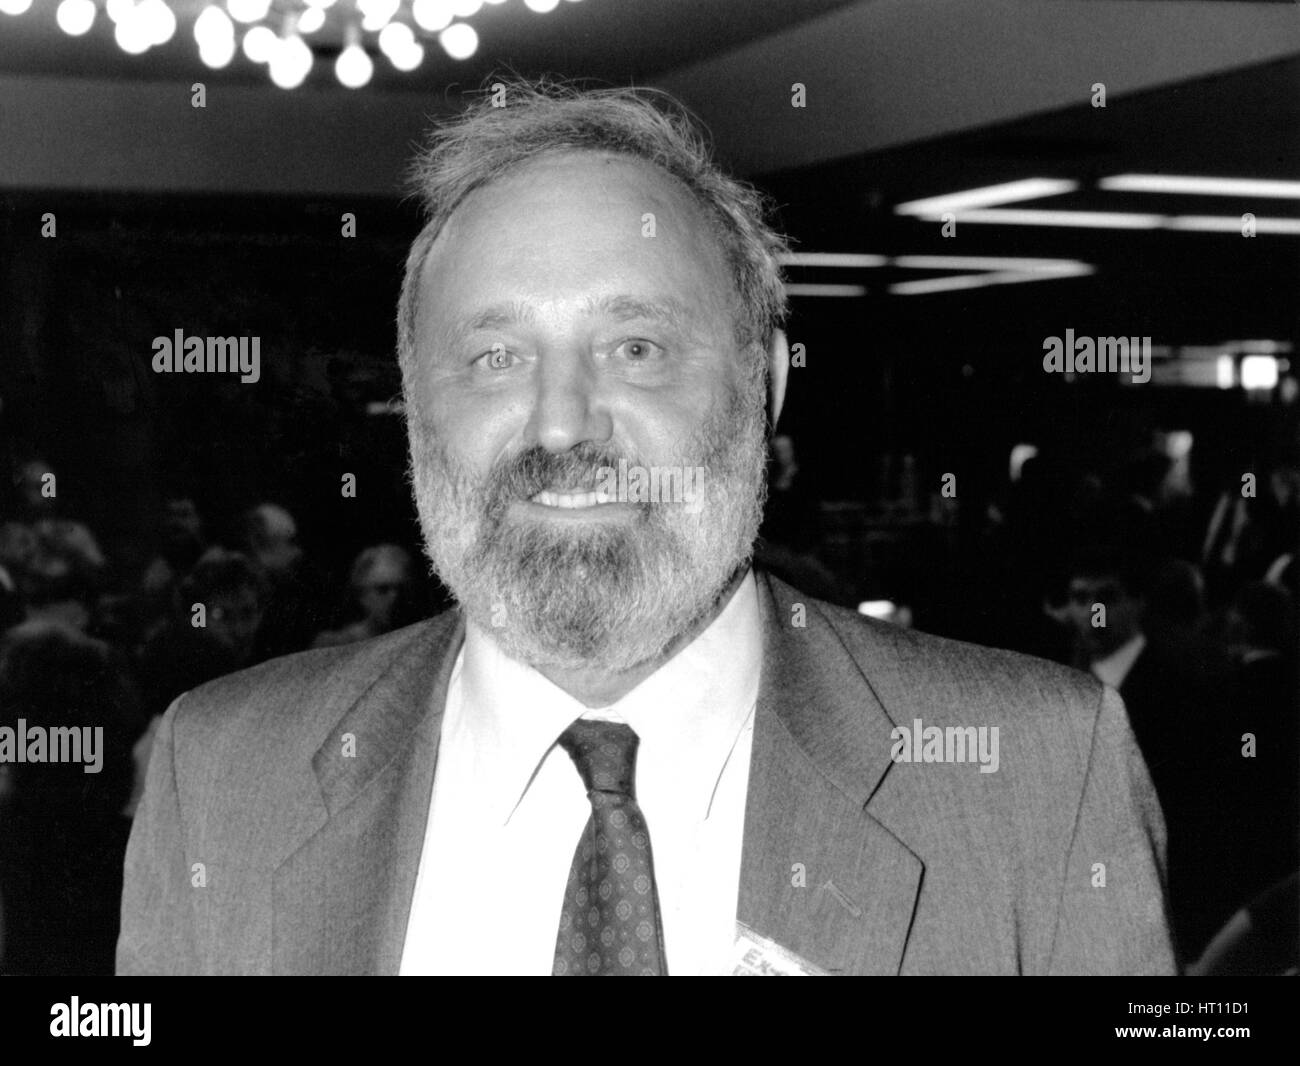 Frank Dobson, Labour party Member of Parliament for Holborn and St. Pancras, attends the party conference in Brighton, - Stock Image